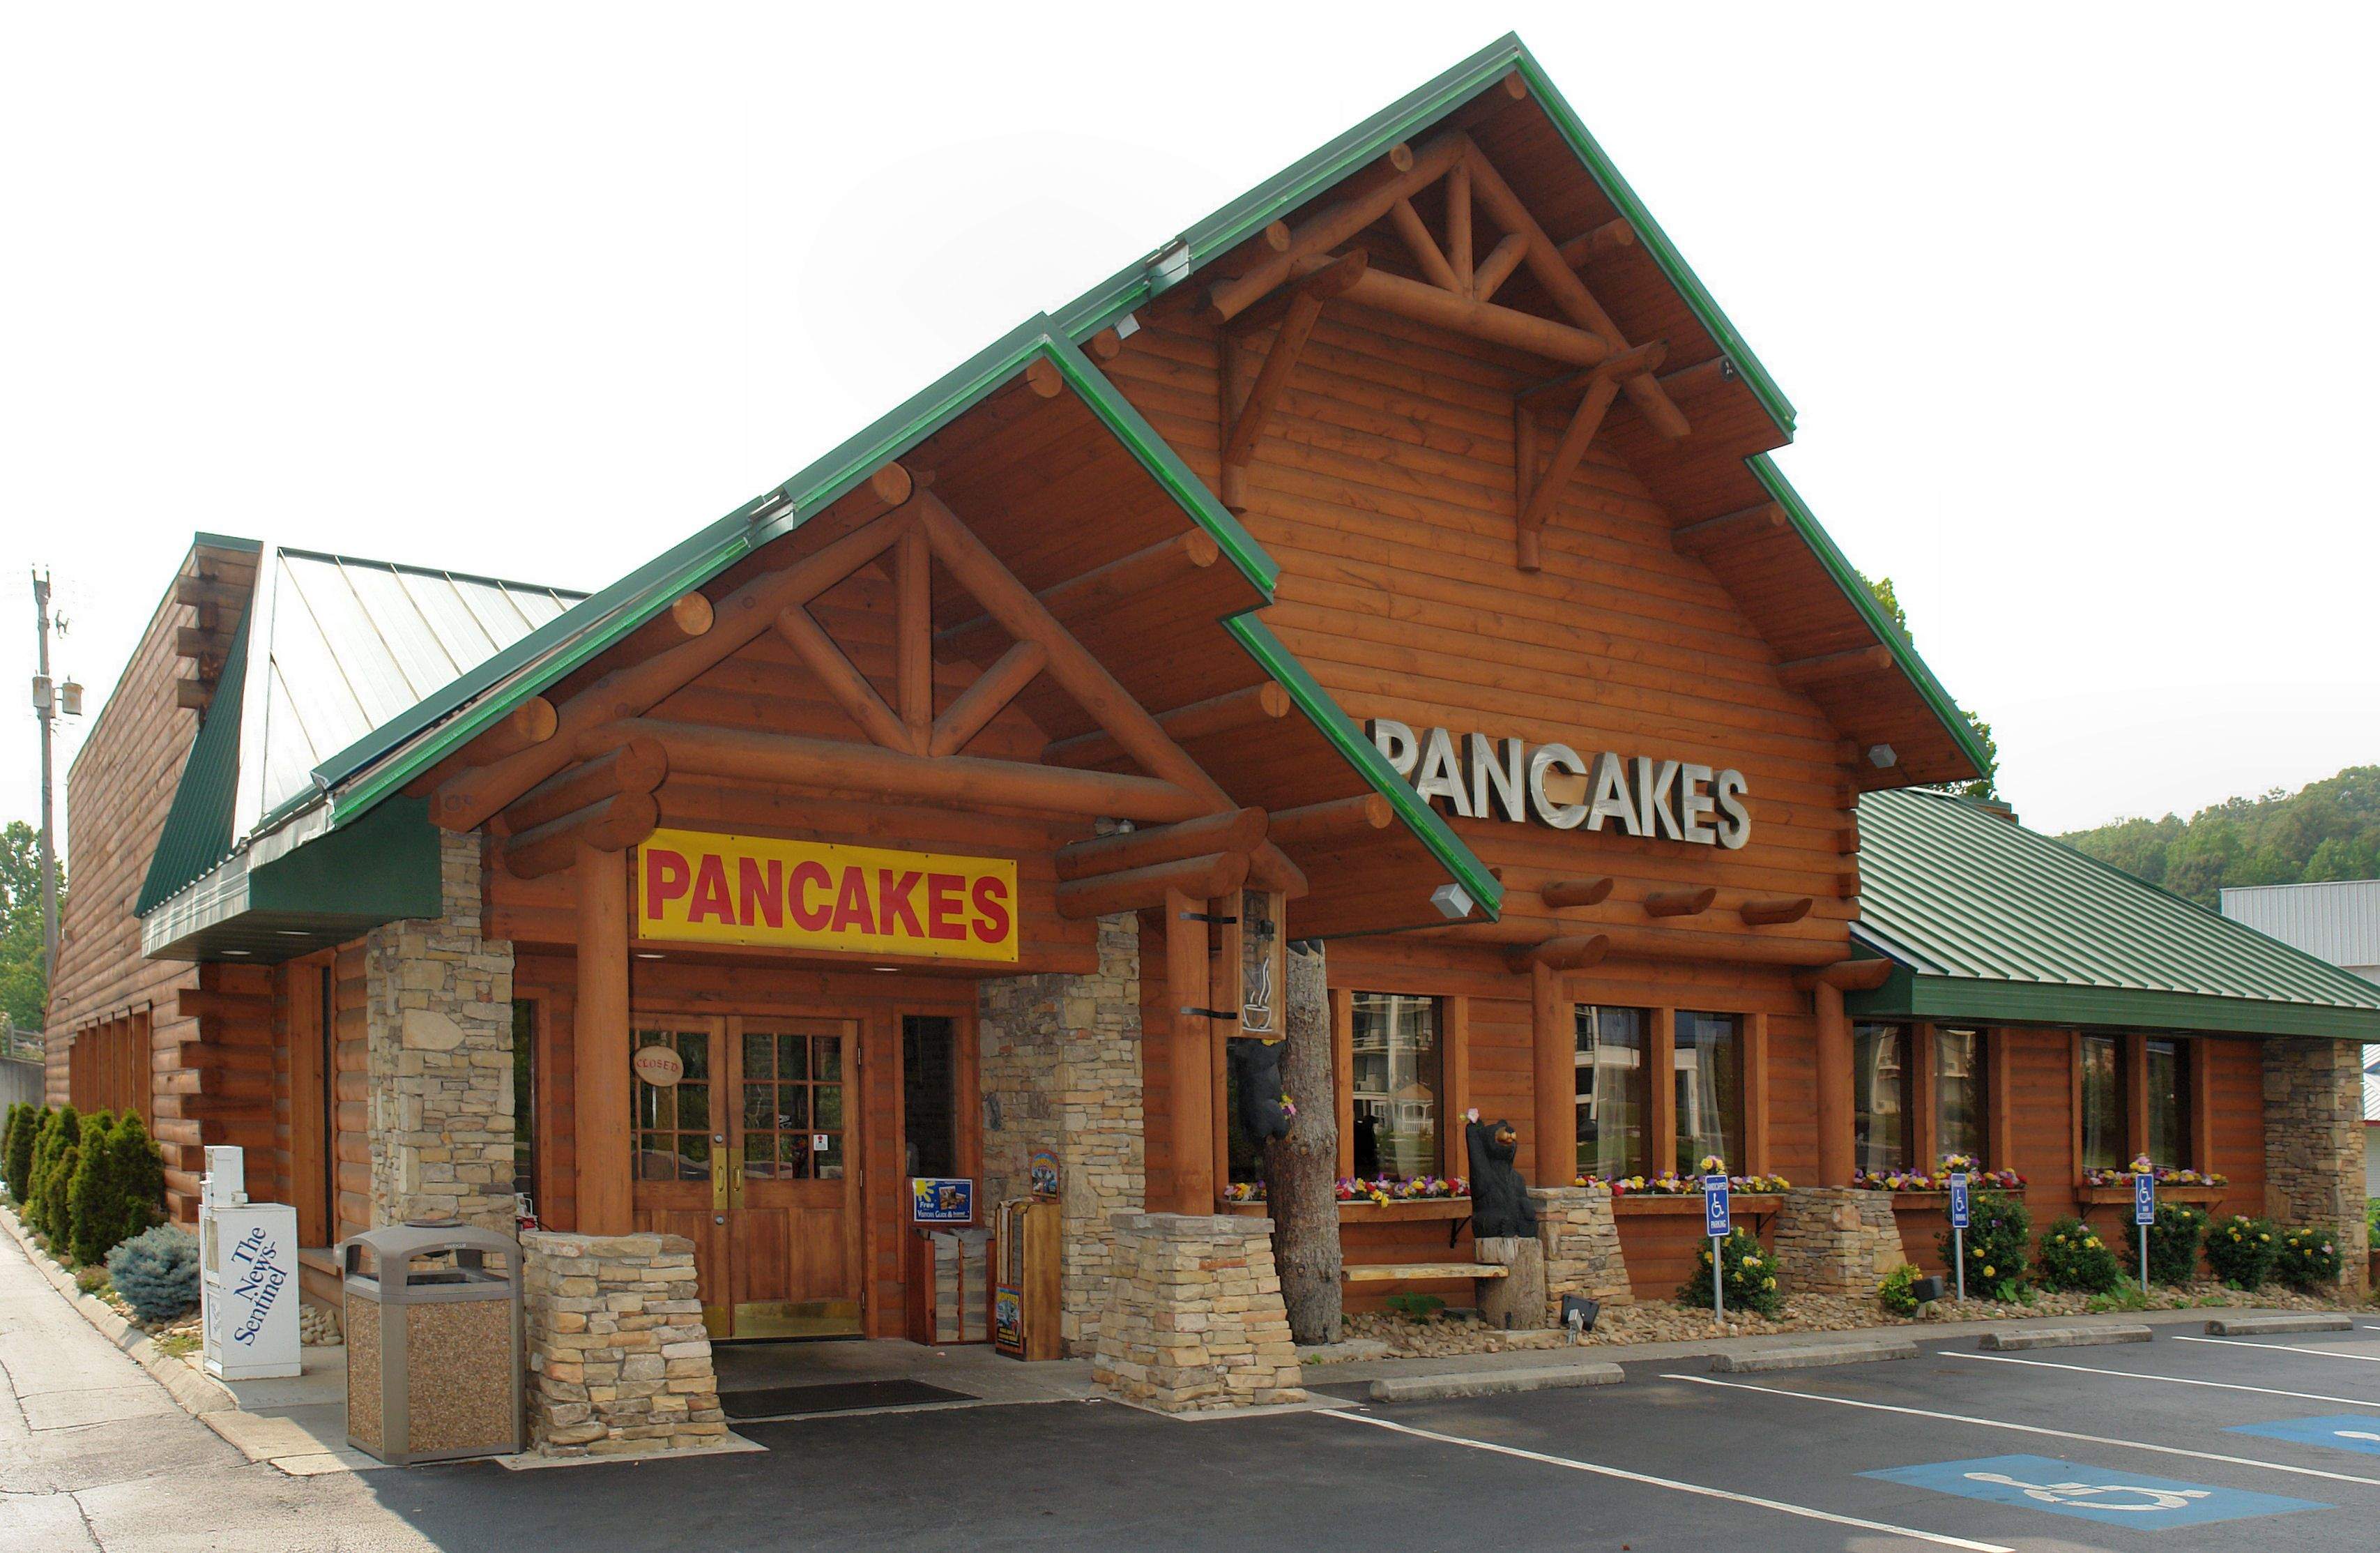 Flapjack S Pancake Cabin 3401 Winfield Dunn Parkway I 40 Exit 407 Kodak Tn 37764 865 932 3598 Cabin Stacked Stone Fireplaces